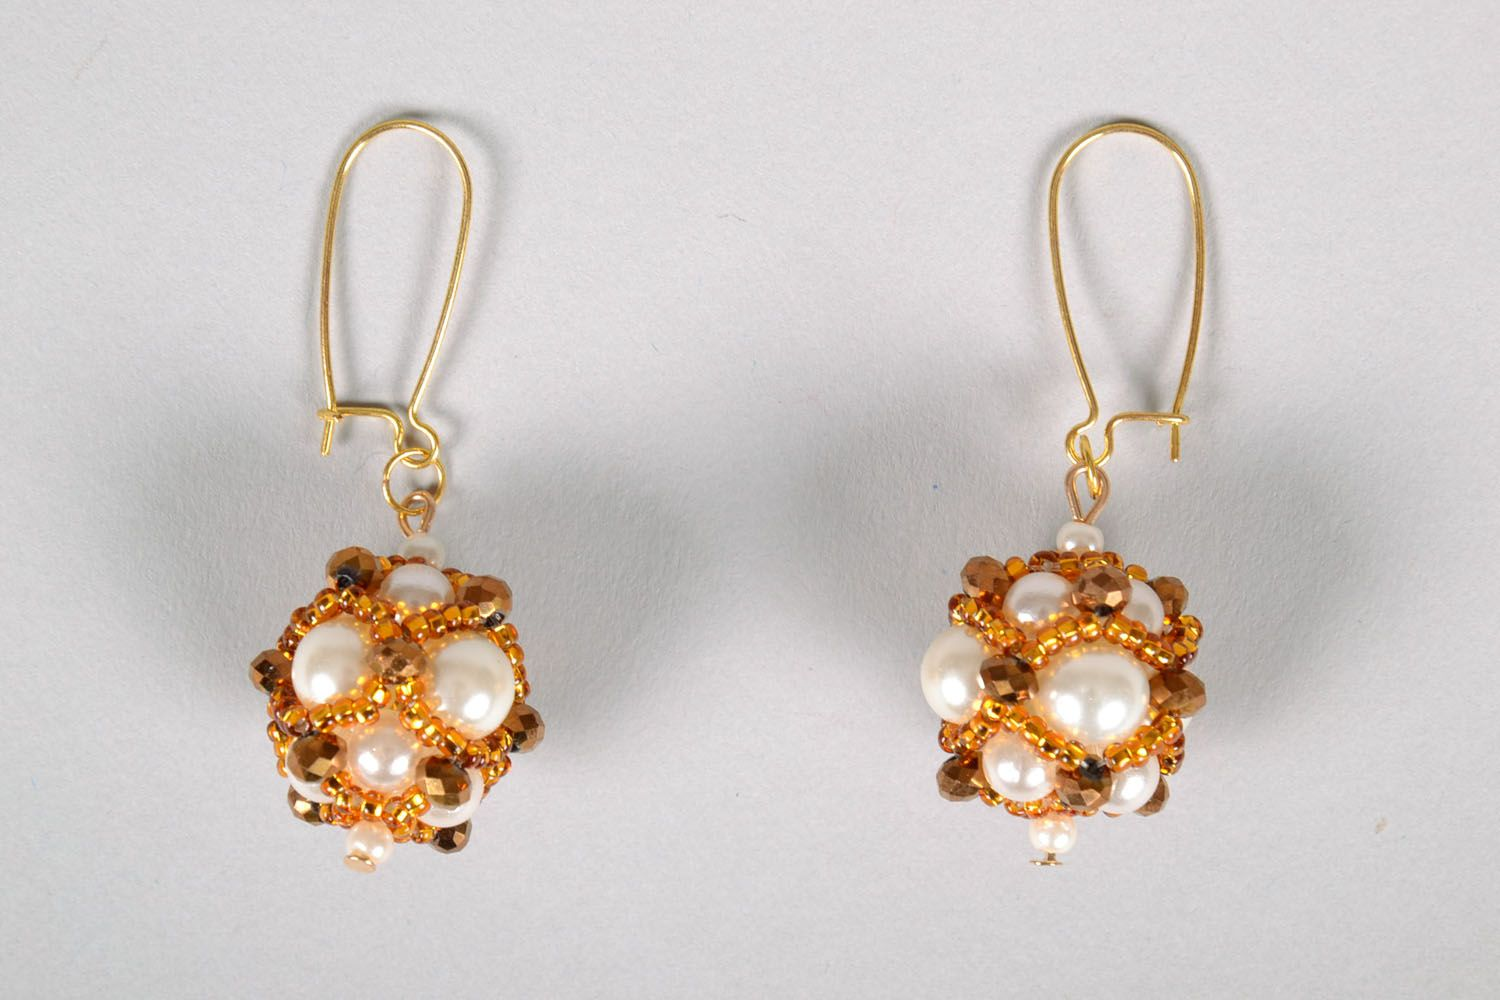 Unusual earrings with charms Golden East photo 2